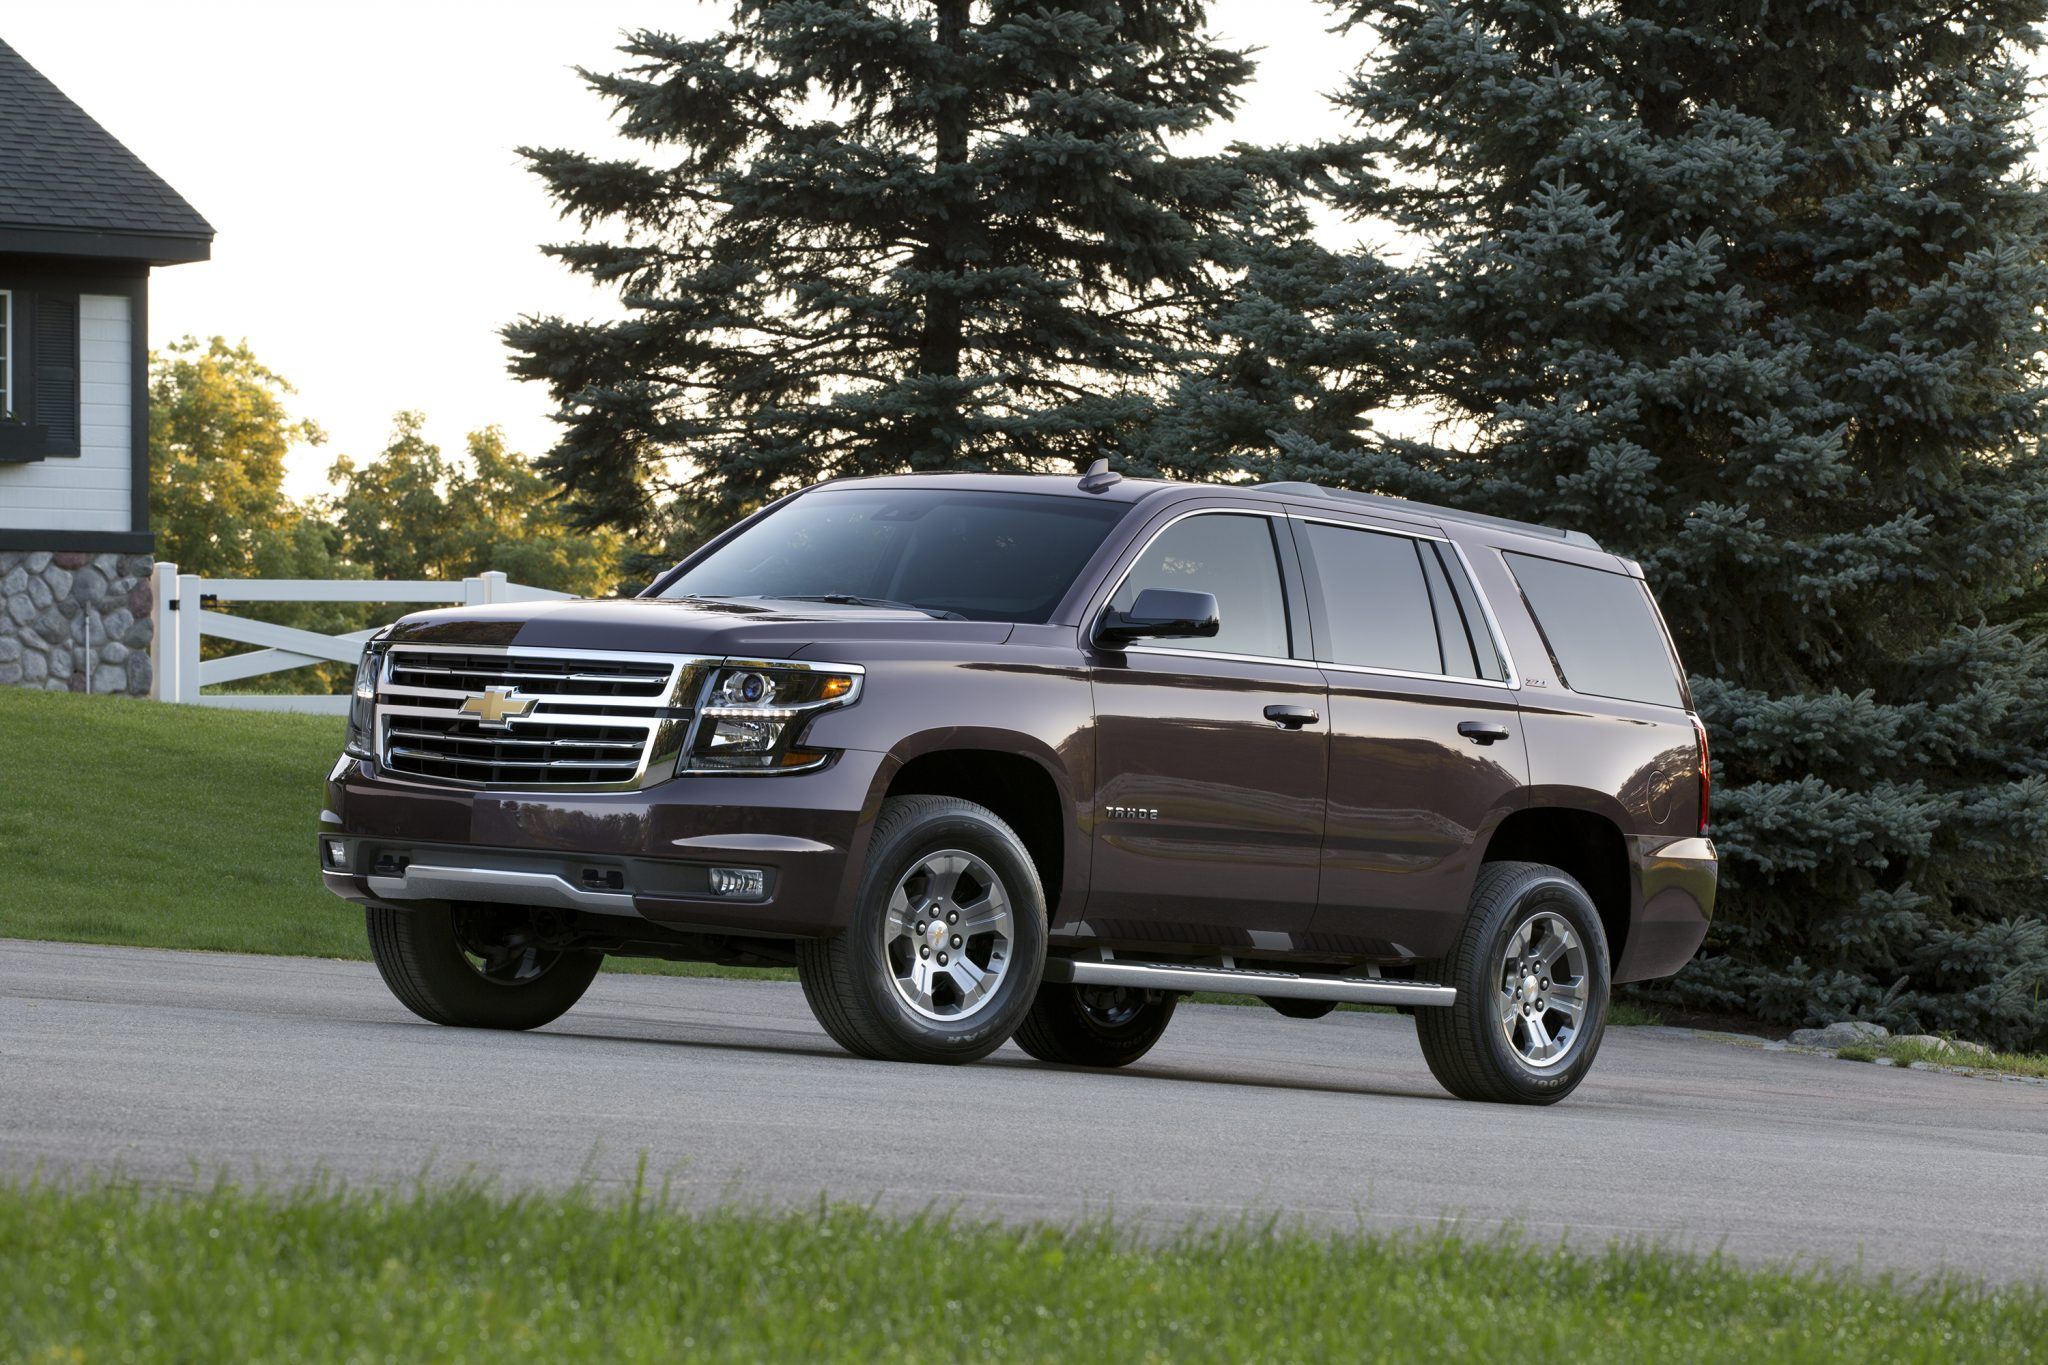 2015 Chevy Tahoe and Suburban Z71 Debut in Texas - The News Wheel